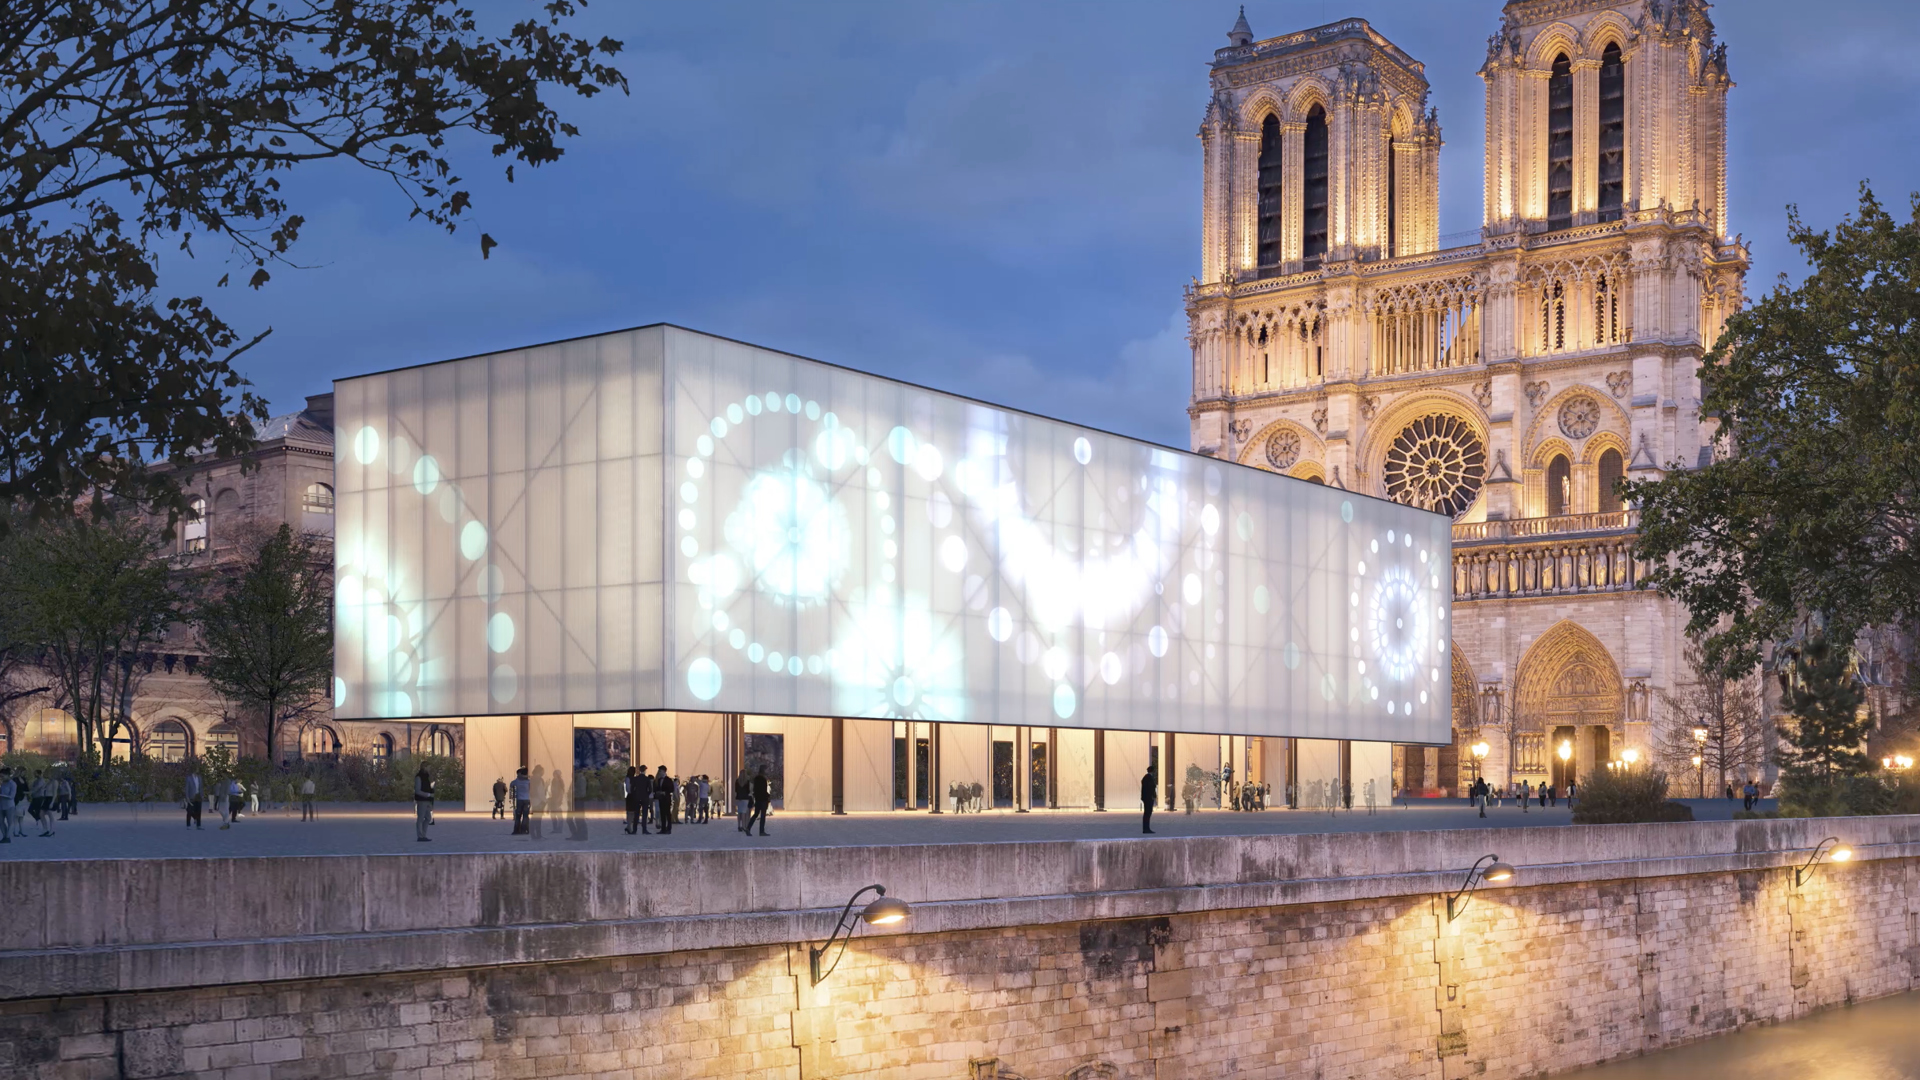 Proposal for Notre-Dame Pavilion by Gensler| Notre-Dame Cathedral| Gensler| STIR